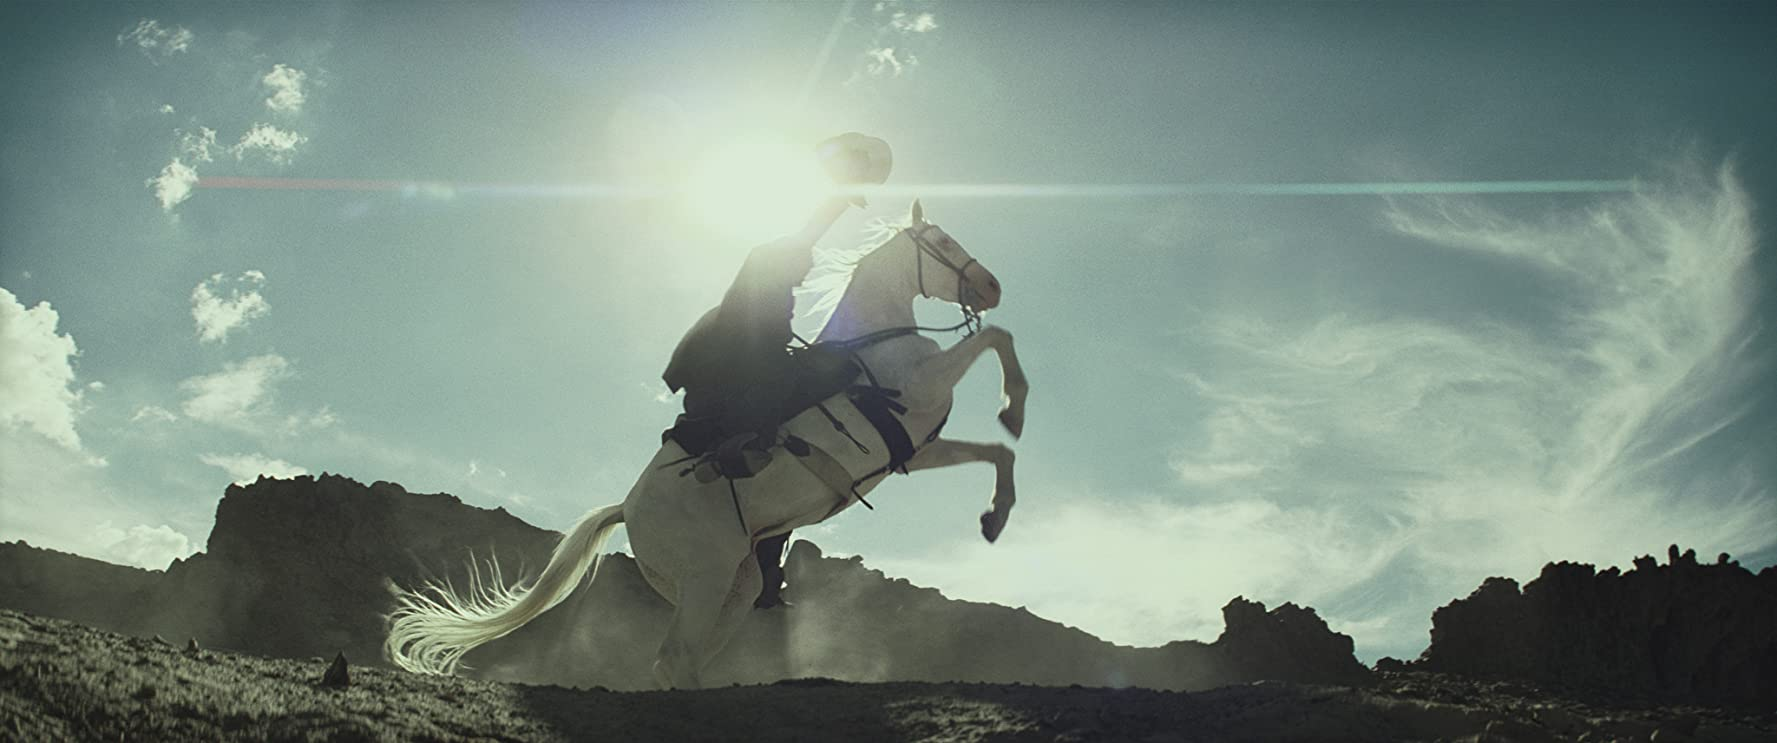 Armie Hammer in The Lone Ranger 2013